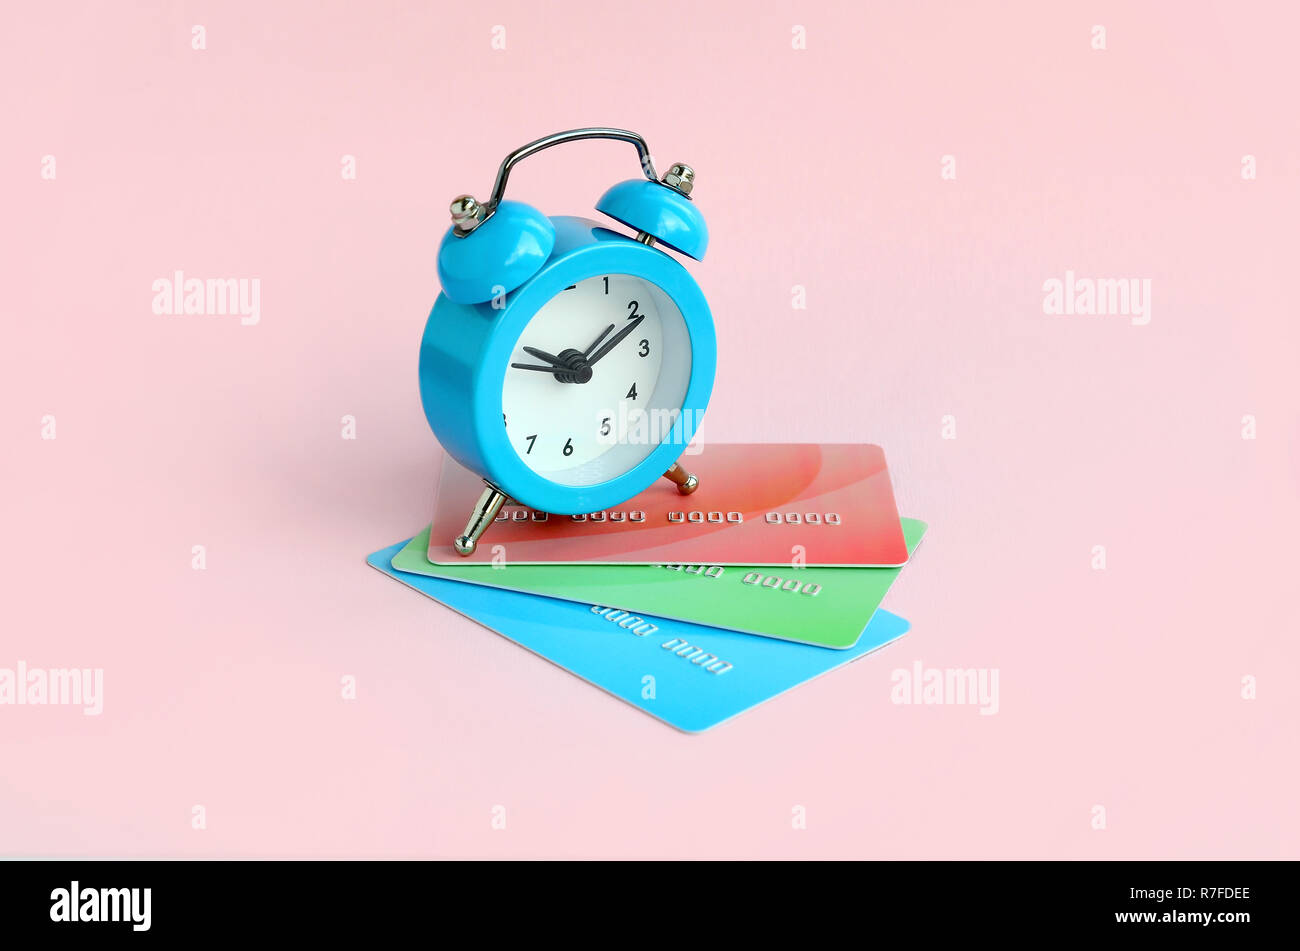 Small blue alarm clock lies on colored credit cards. The concept of modern fast online banking and funds transfer operations - Stock Image